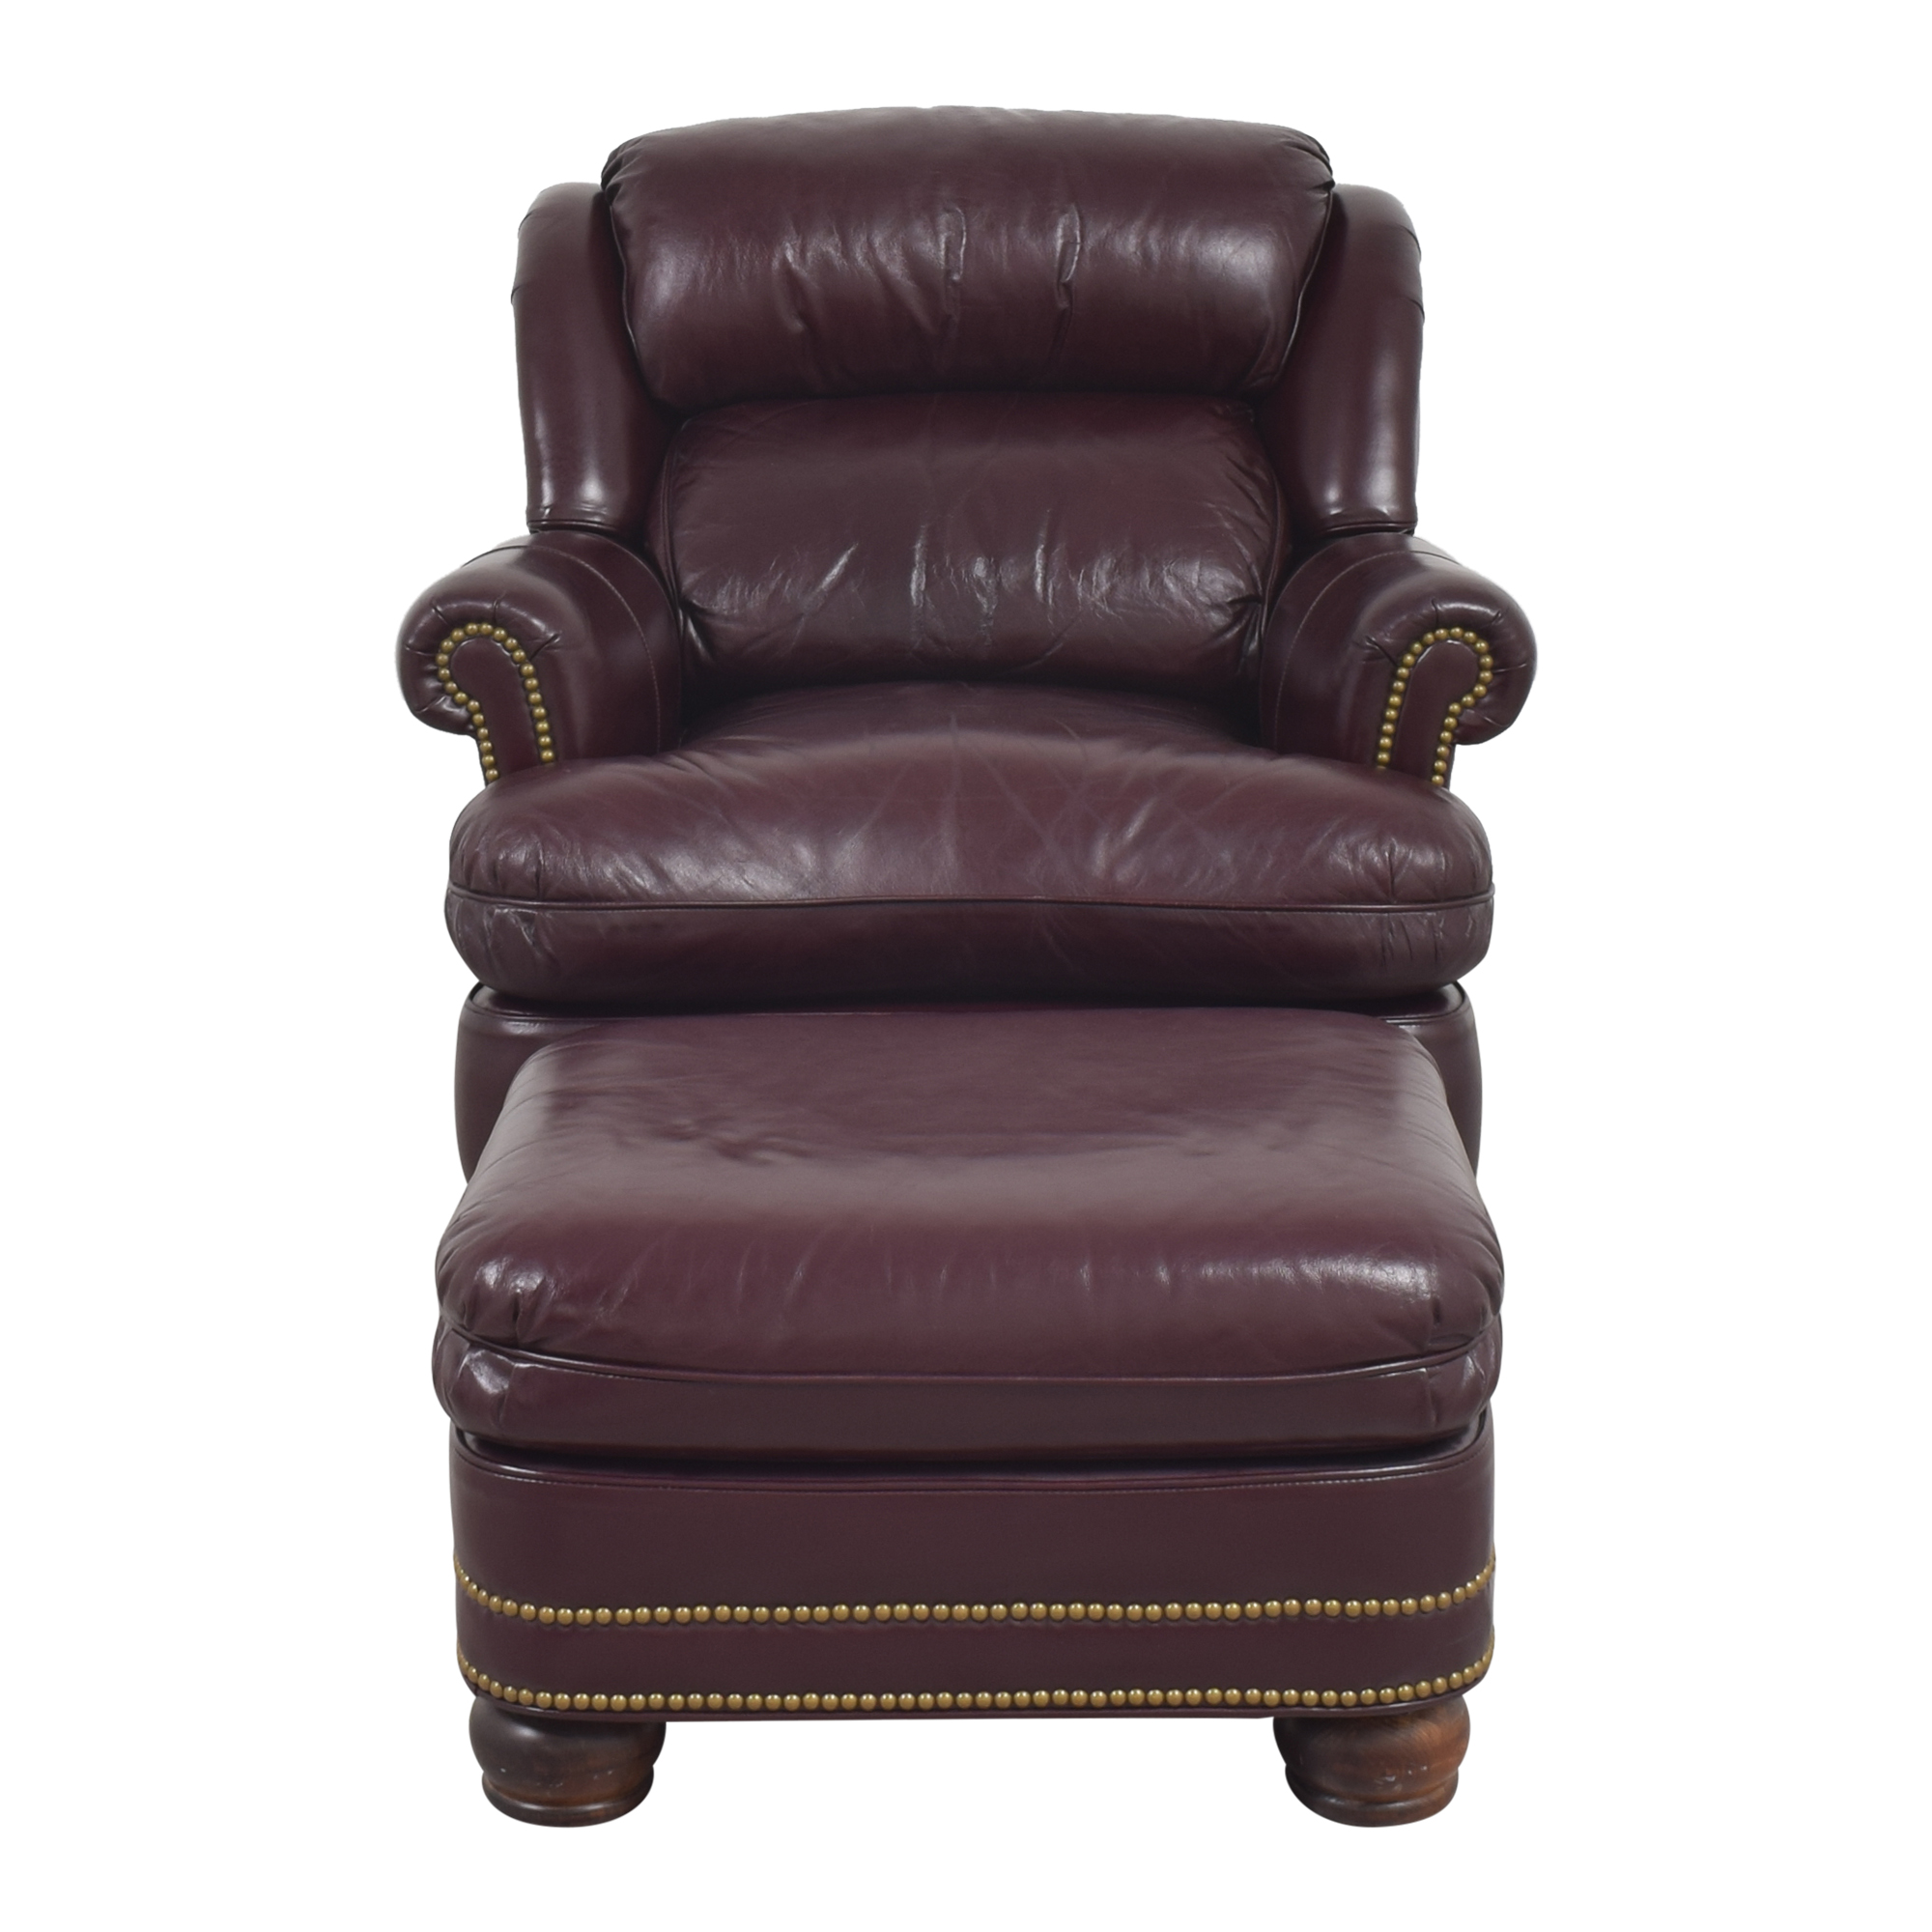 buy Hancock and Moore Hancock and Moore Austin Recliner Chair with Ottoman online